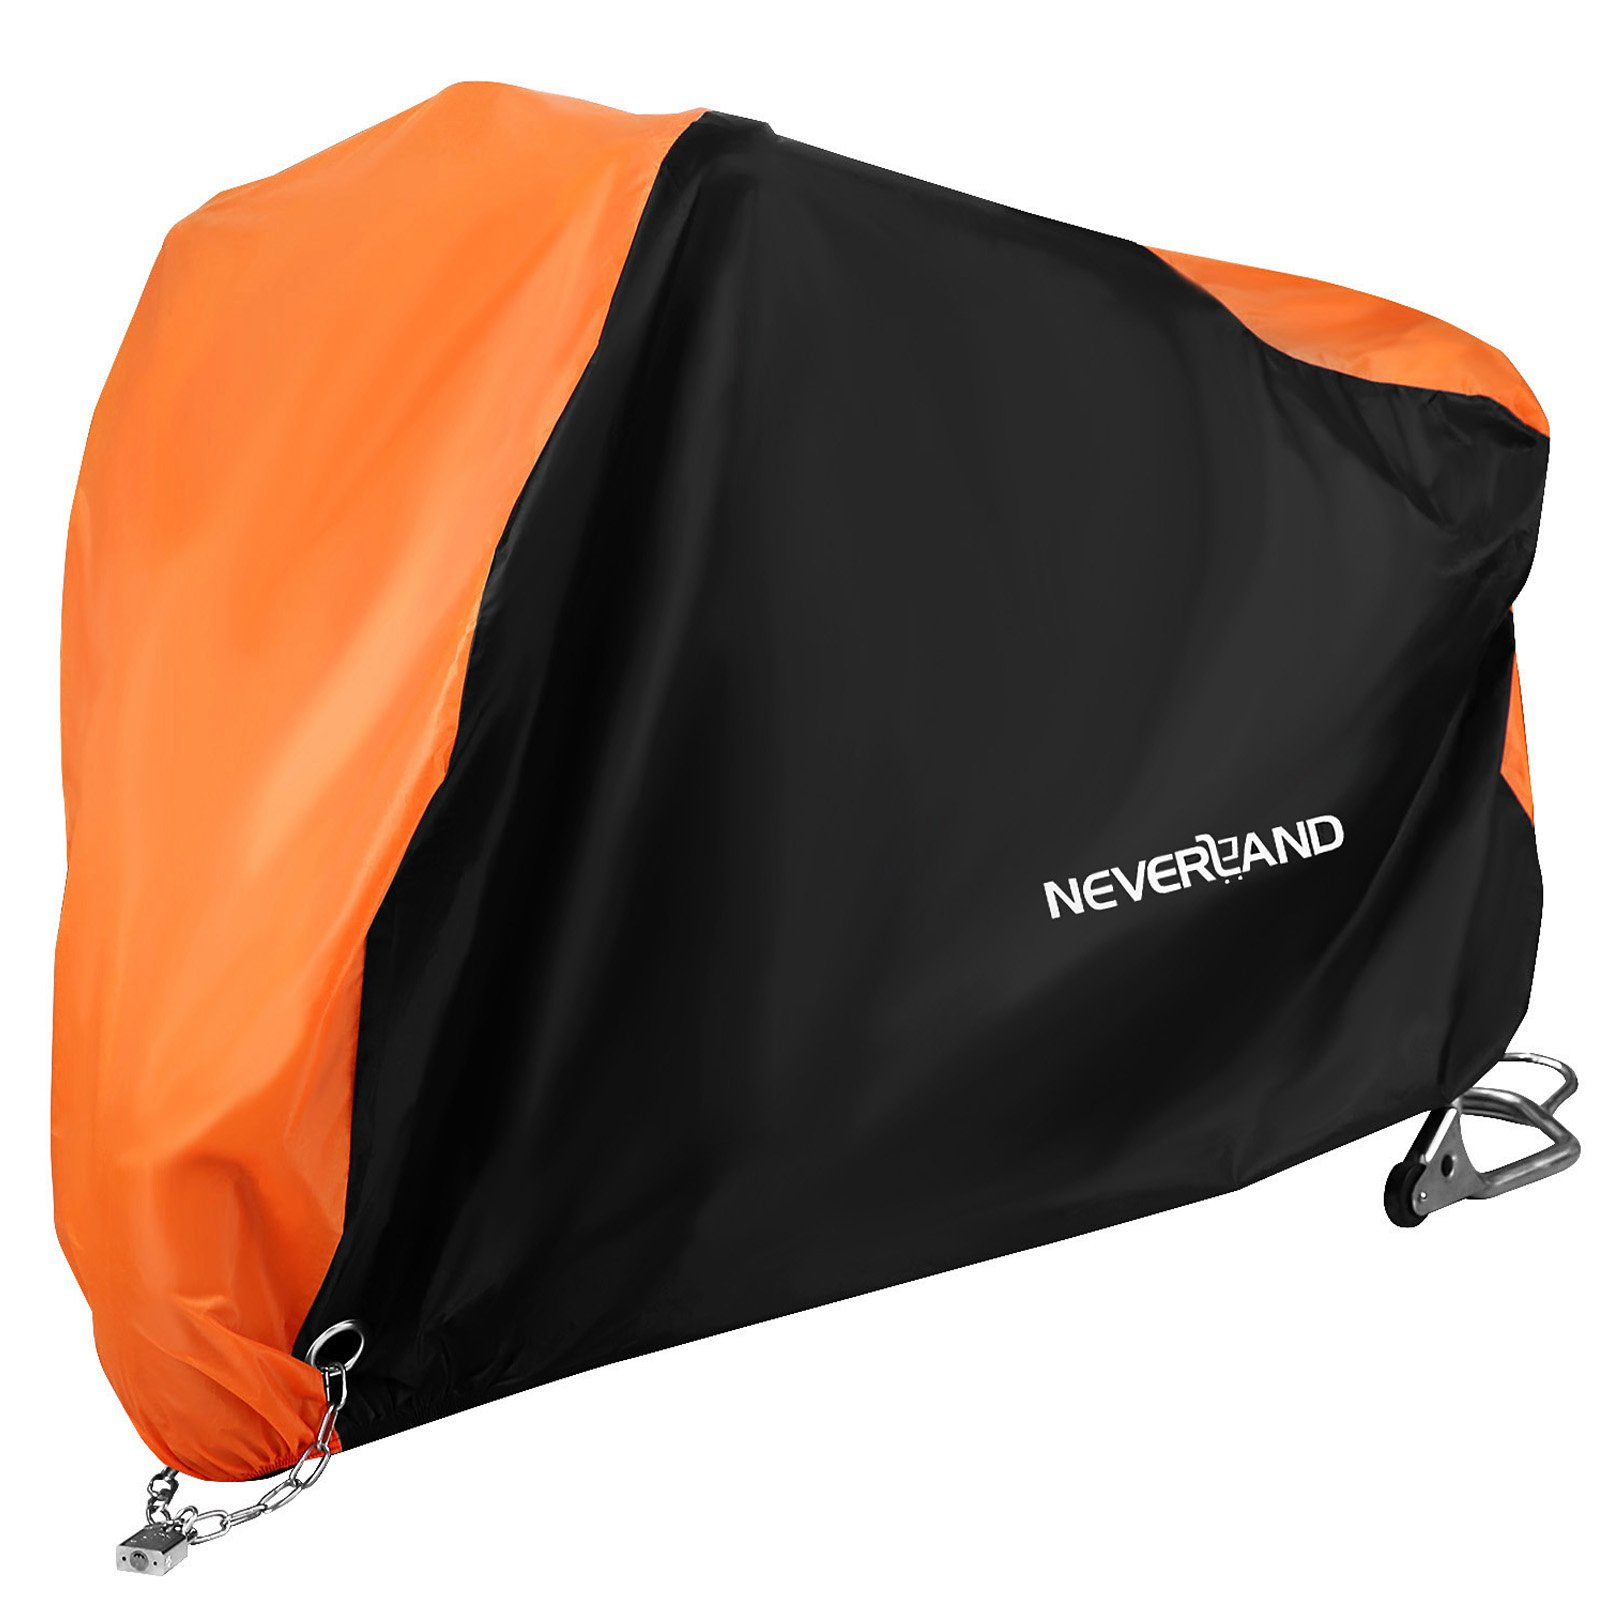 NEVERLAND Motorcycle Cover,Outdoor Waterproof UV Dust Protector Cover,2 Stainless Steel Lock-Holes Fits 82''to 90'' Road,Street,Sport,Touring(Black&Orange)